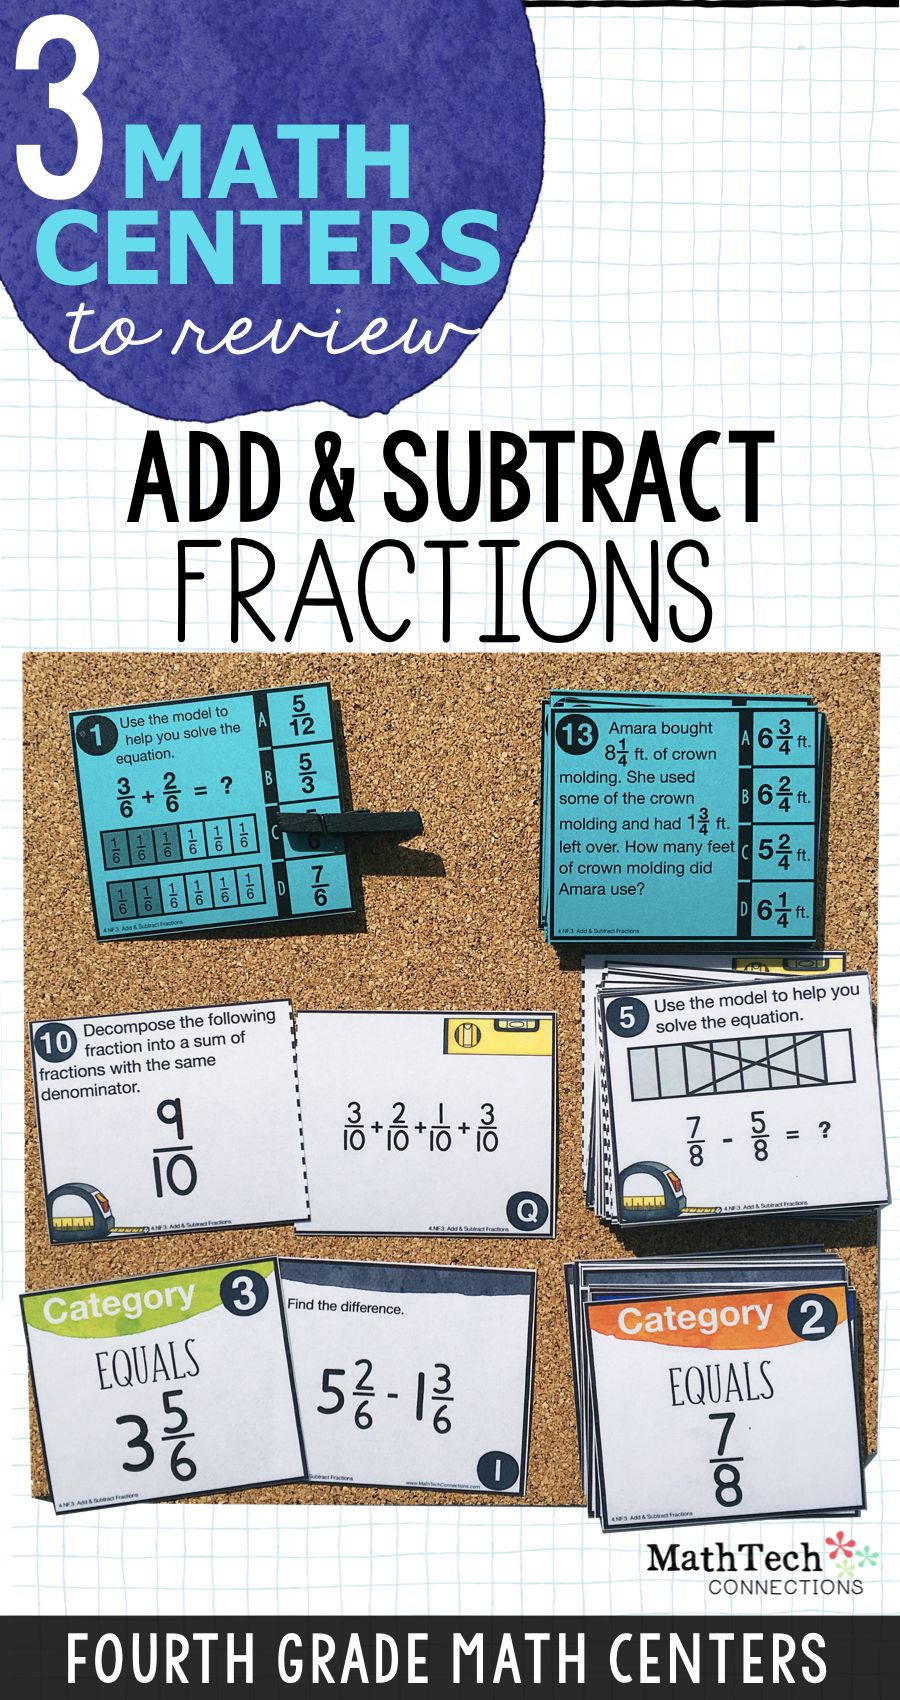 how to decompose a fraction into a sum